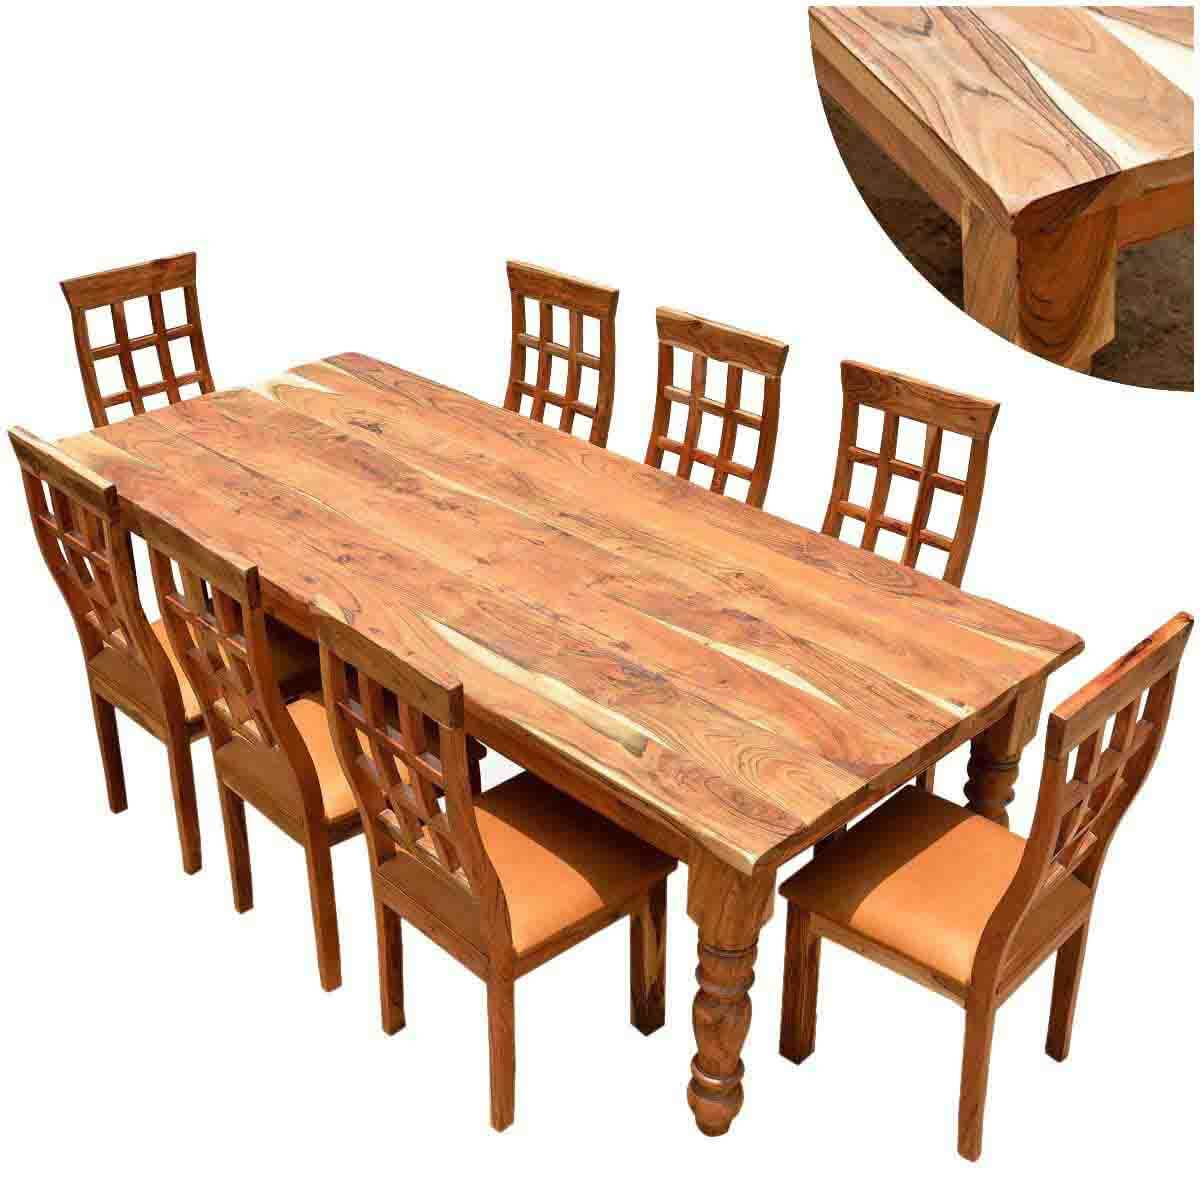 Rustic Solid Wood Large Square Dining Table Chair Set: Rustic Dining Table And Chair Sets